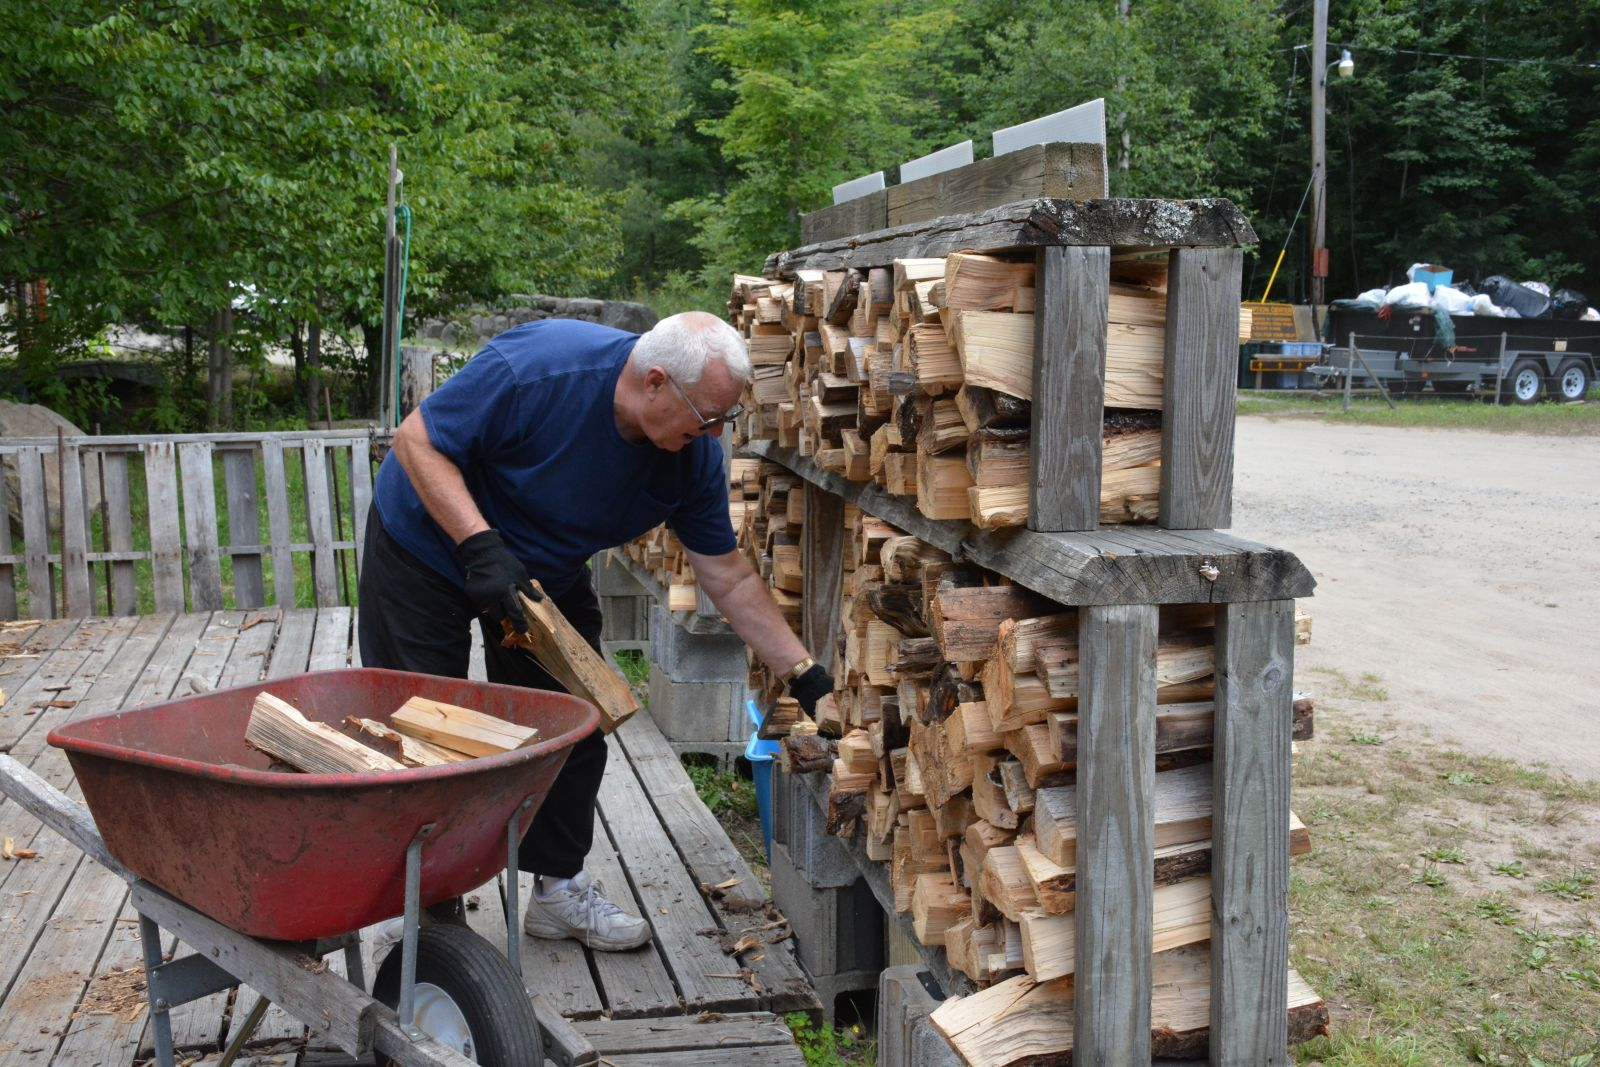 Richard Antalek of Naples, Florida has been coming to Blue Jay Campsite since 1970. He's originally from the Albany area and is a seasonal camper. He likes to help out with the firewood to keep himself busy and says he fills 10 or 12 bins of firewood a day.